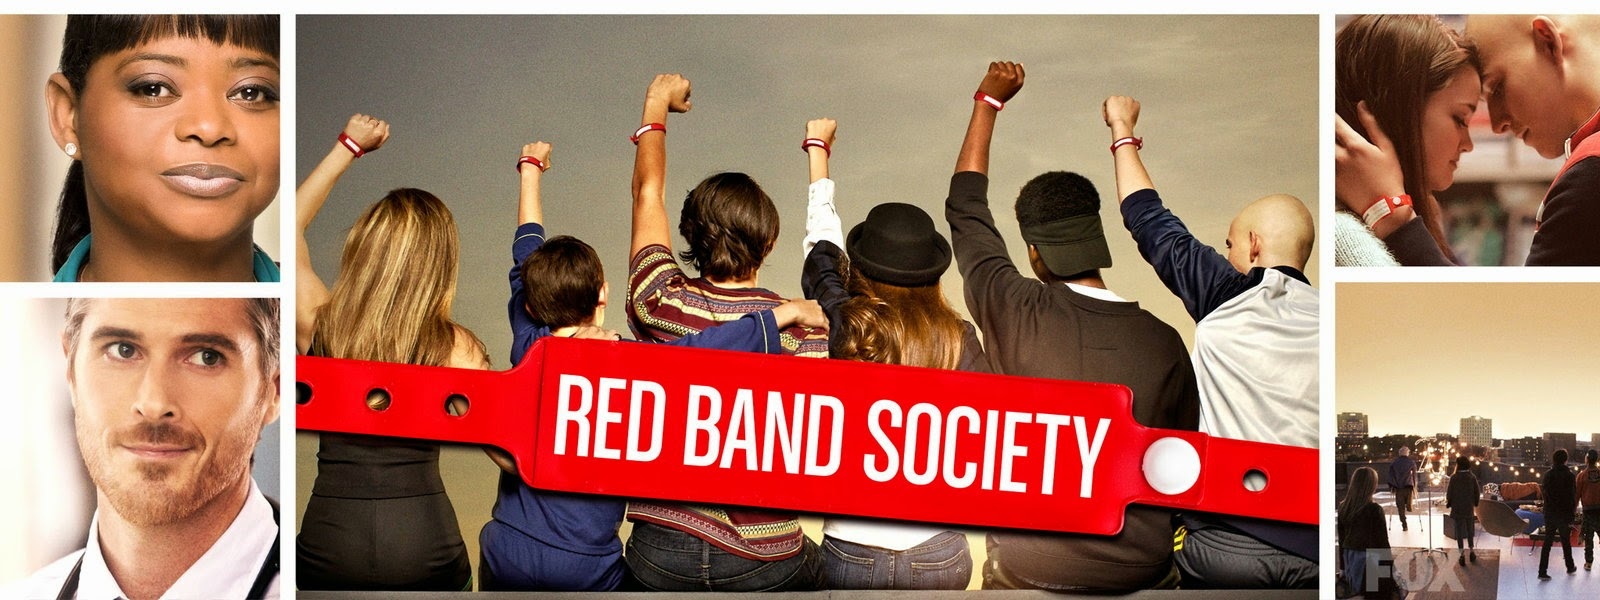 Red Band Society (TV Series 2014–2015) - Full Cast & Crew ...